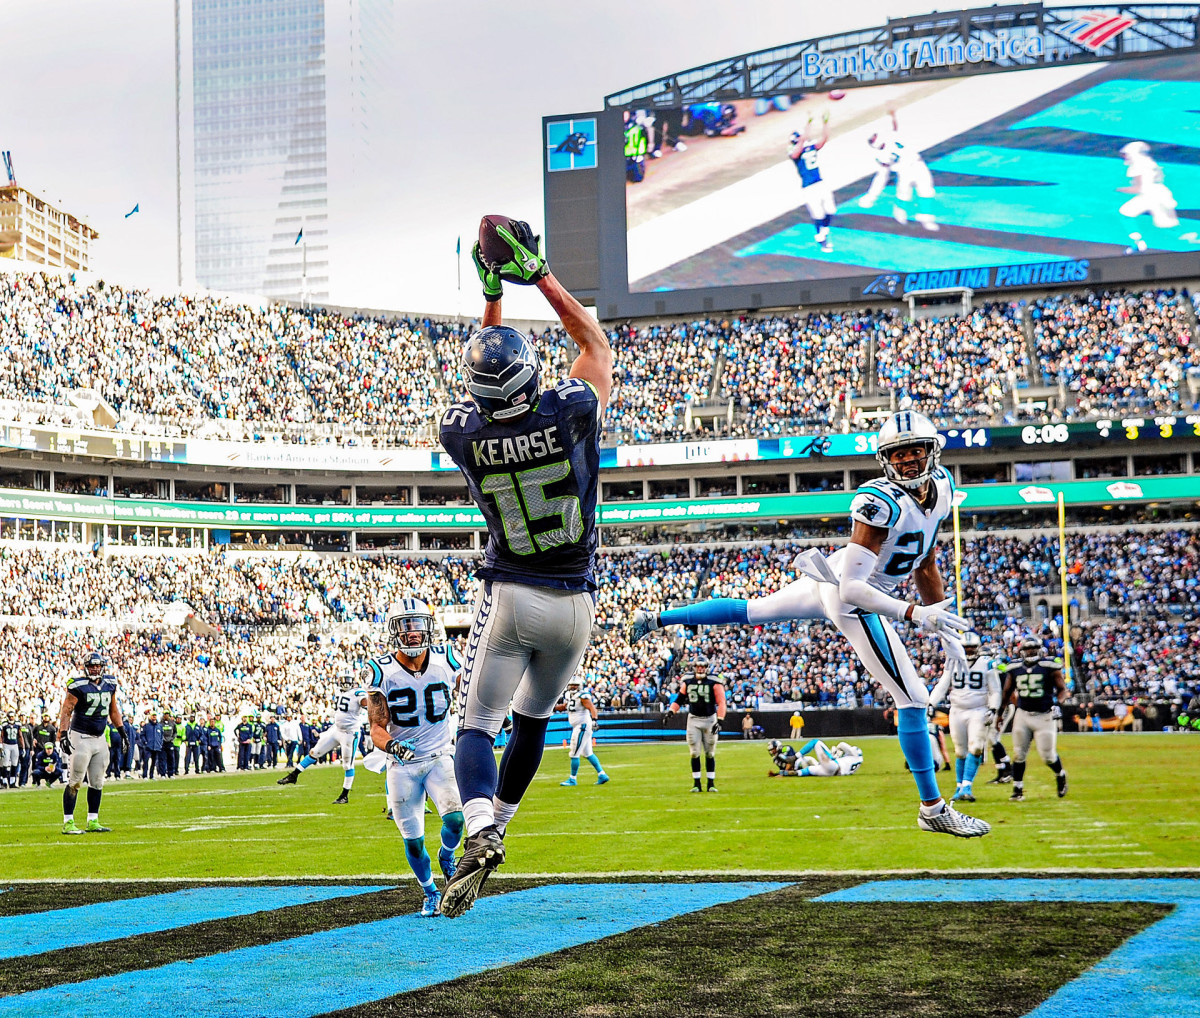 Jermaine Kearse catches a touchdown pass from Russell Wilson (on the ground in the background) as Panthers cornerback Josh Norman looks back.